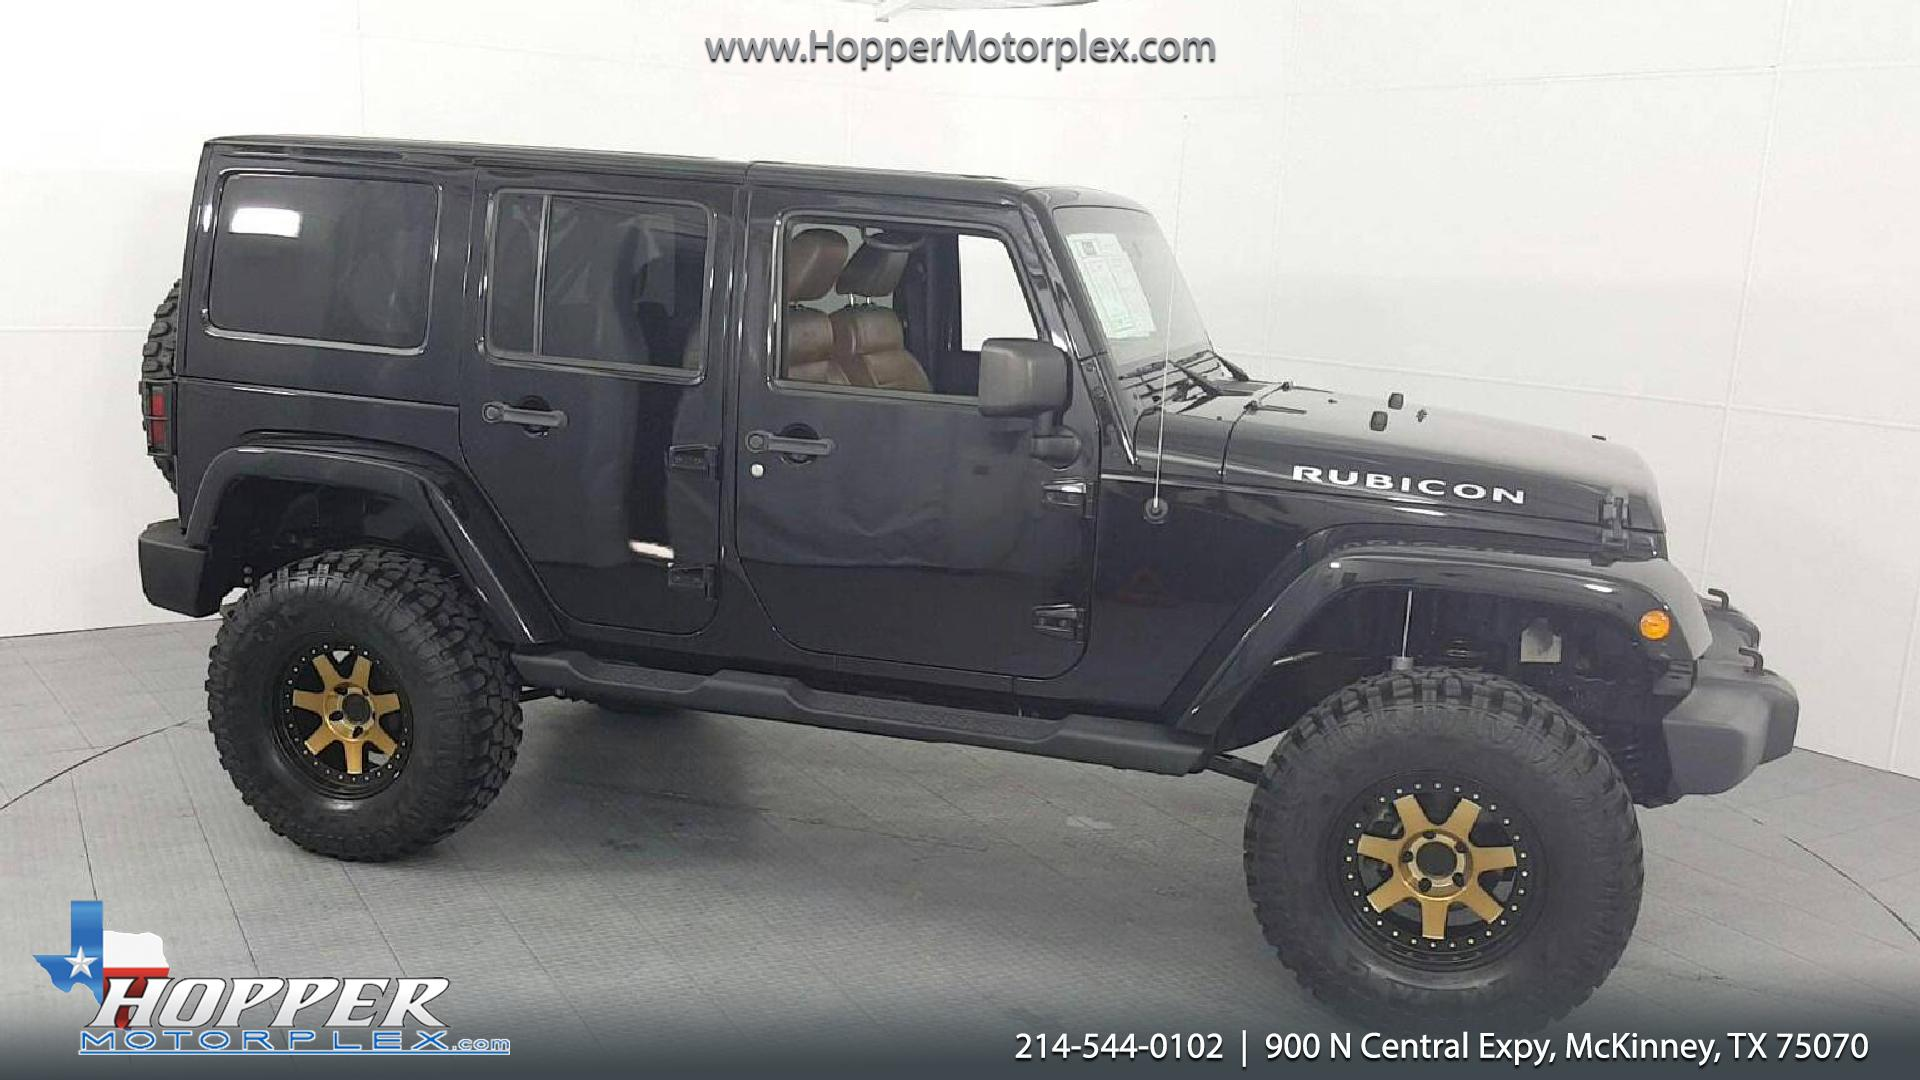 2012 Jeep Wrangler Unlimited Rubicon Lifted W Custom Tires And White Sahara With Tire Carrier Led Tail Lights 1